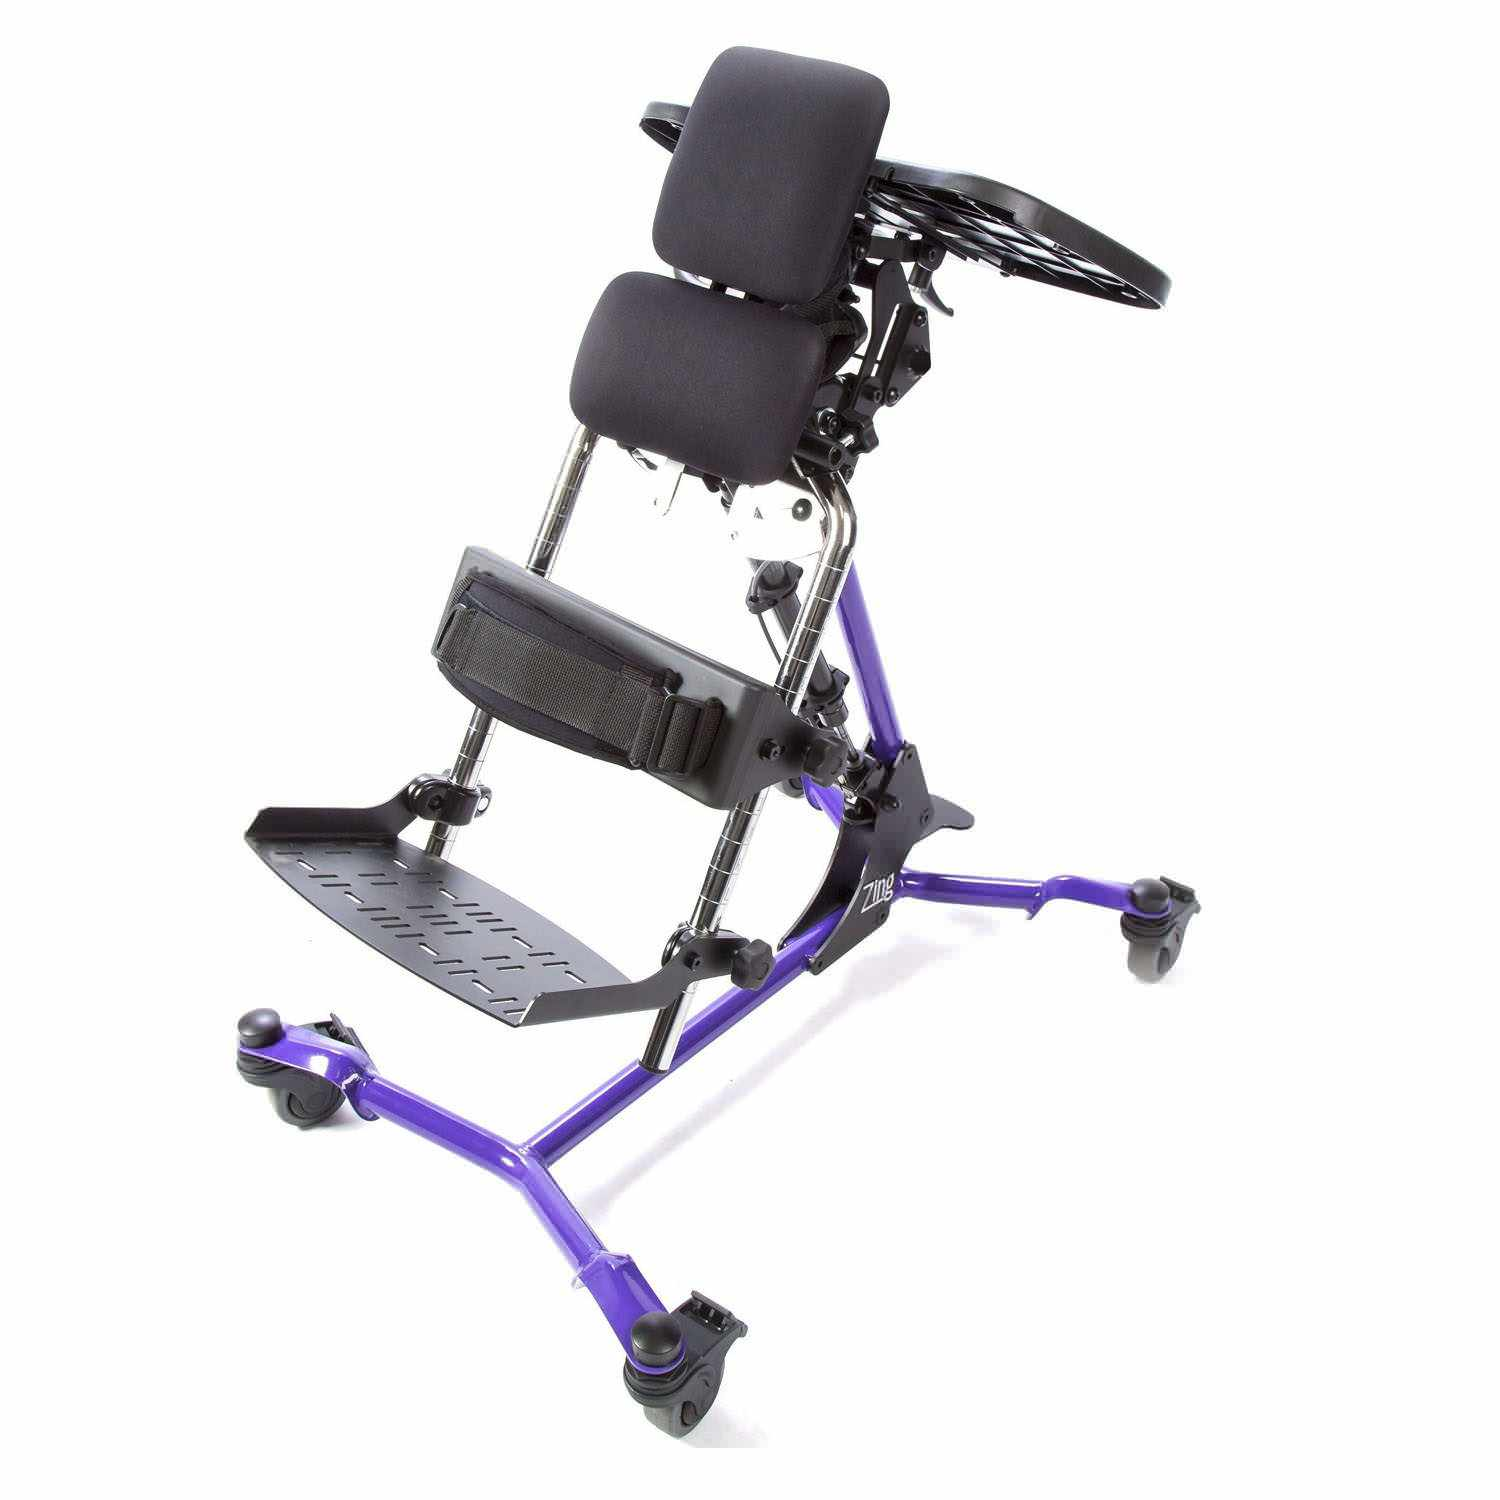 EasyStand Zing prone stander - Package